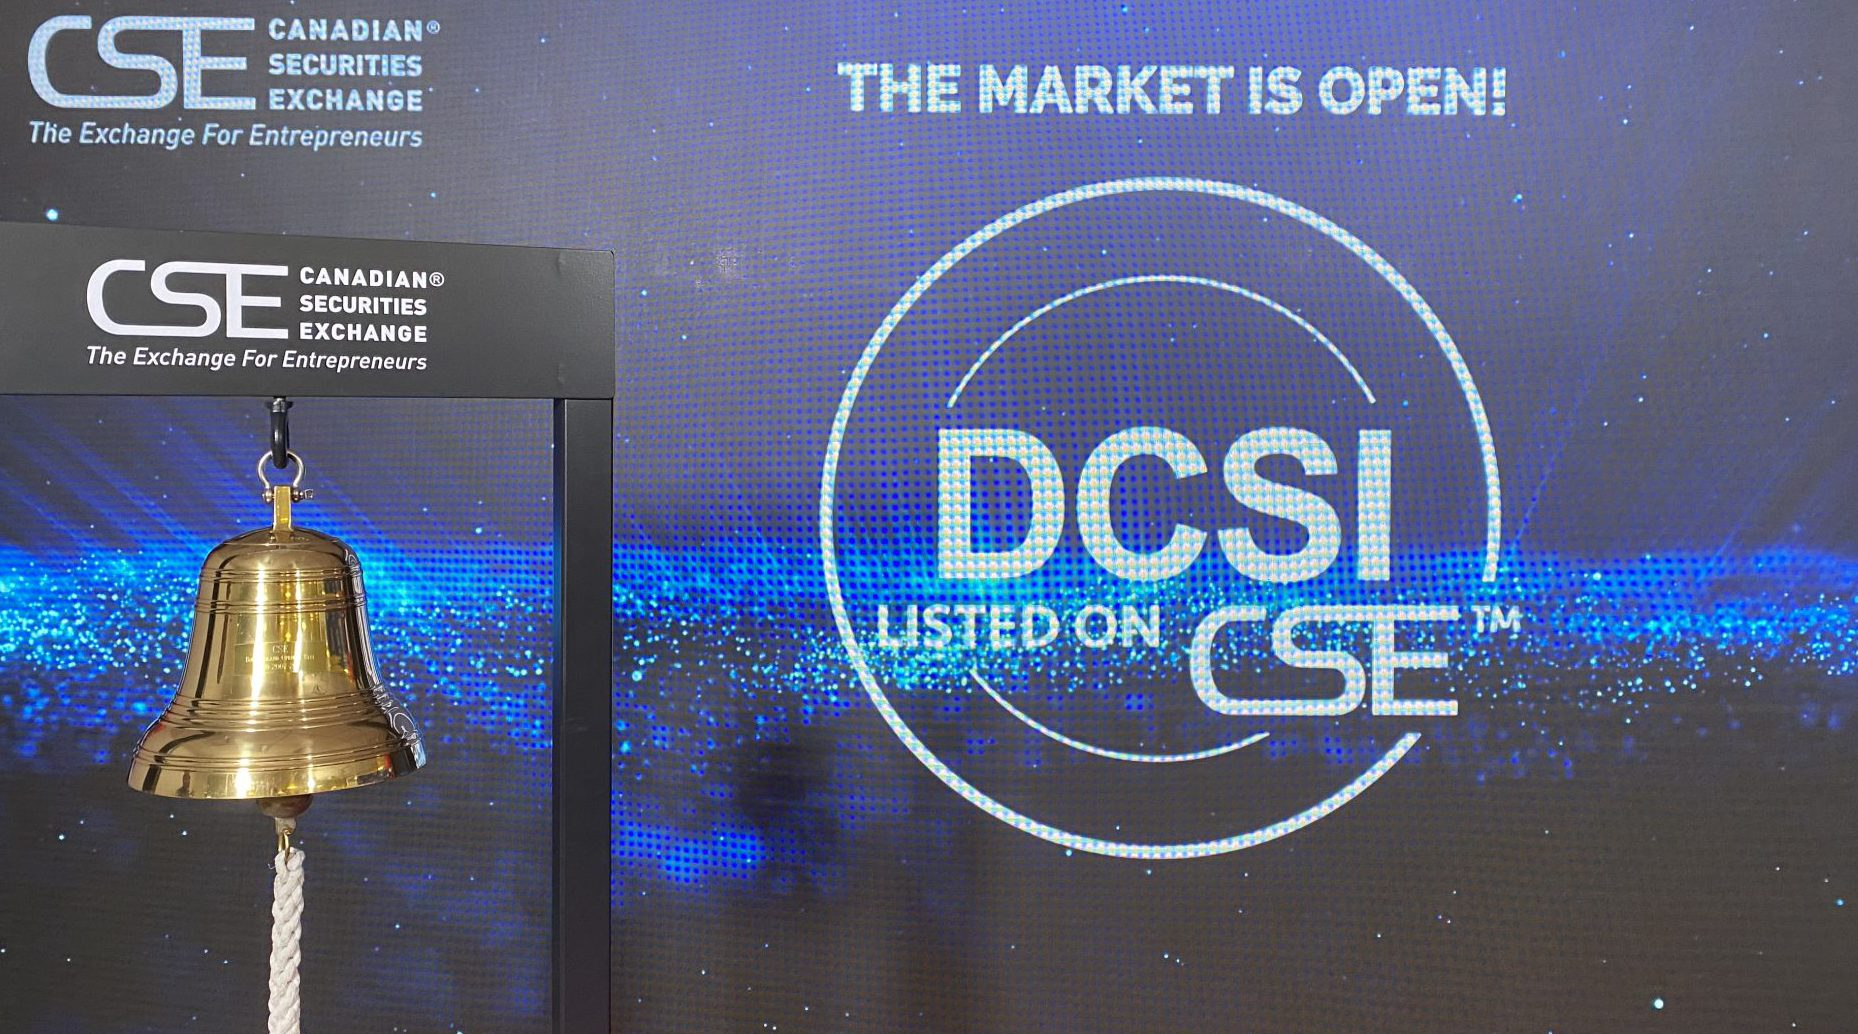 DIRECT COMMUNICATION SOLUTIONS INC. OPENS THE MARKET AT THE CSE MEDIA CENTRE